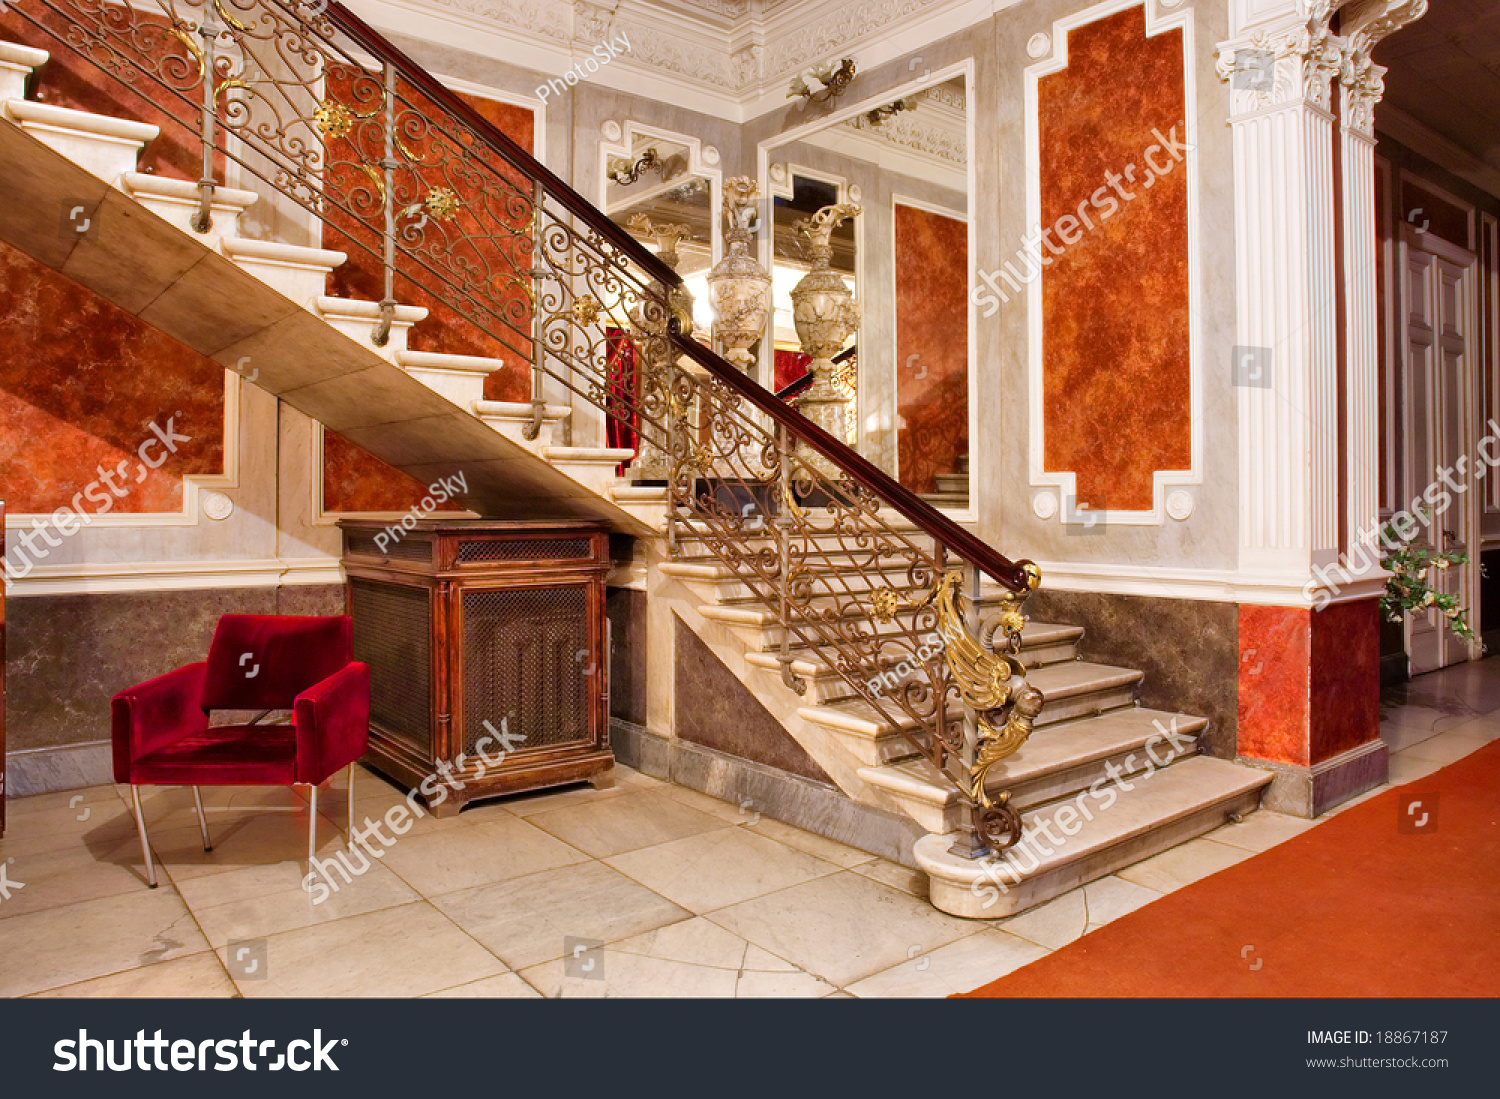 Stairway And Mirror Inside Luxury Apartments Shot In